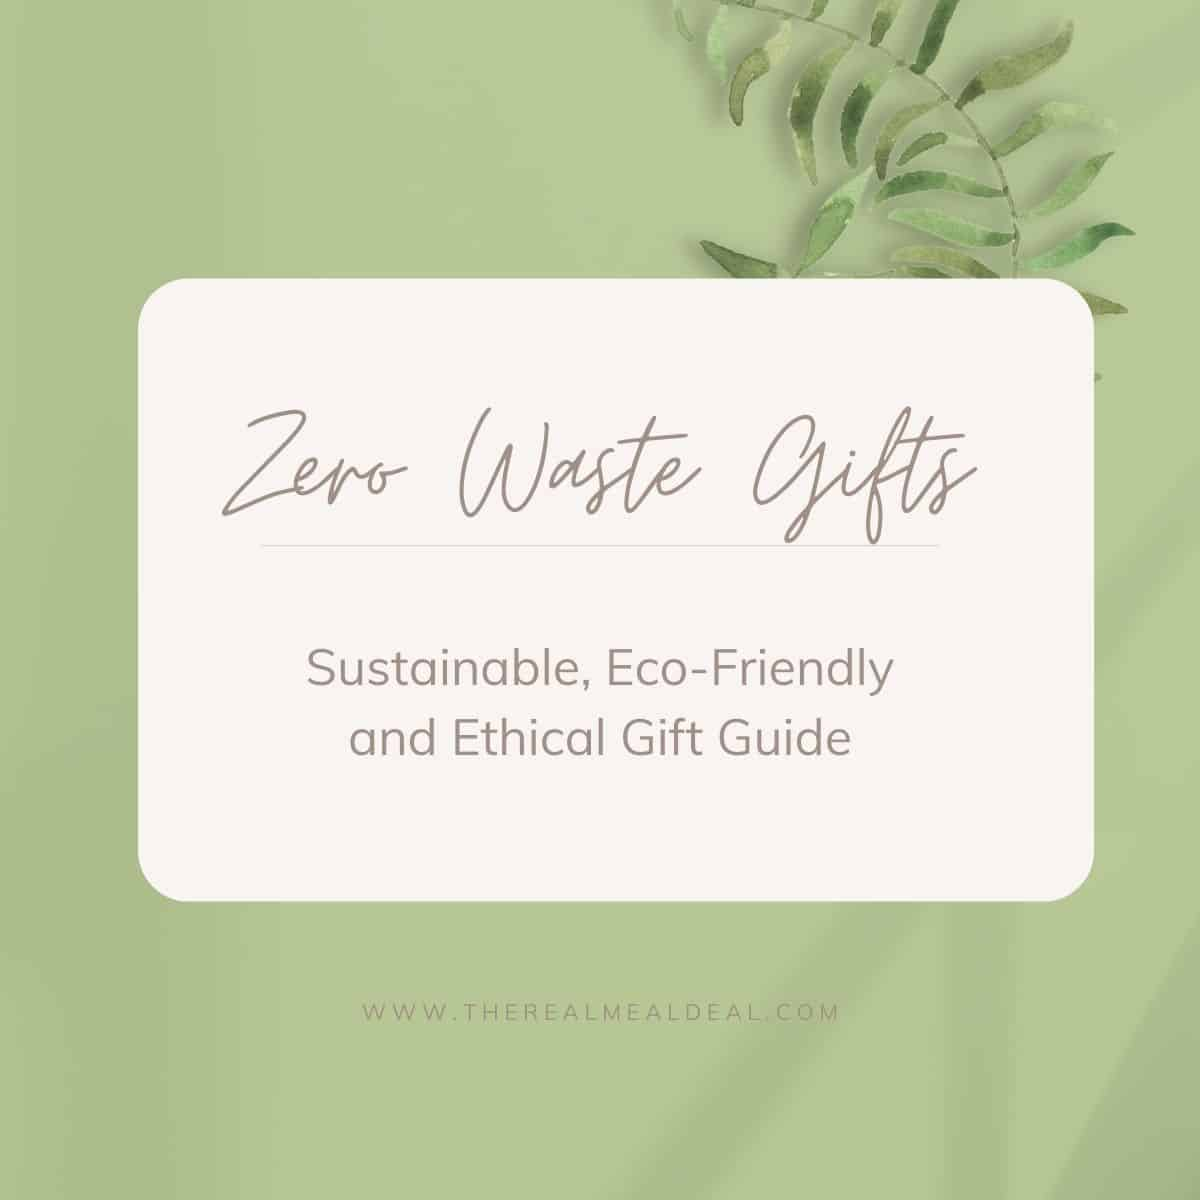 Text Zero waste gifts sustainable eco-friendly and ethical gift guide on green backround